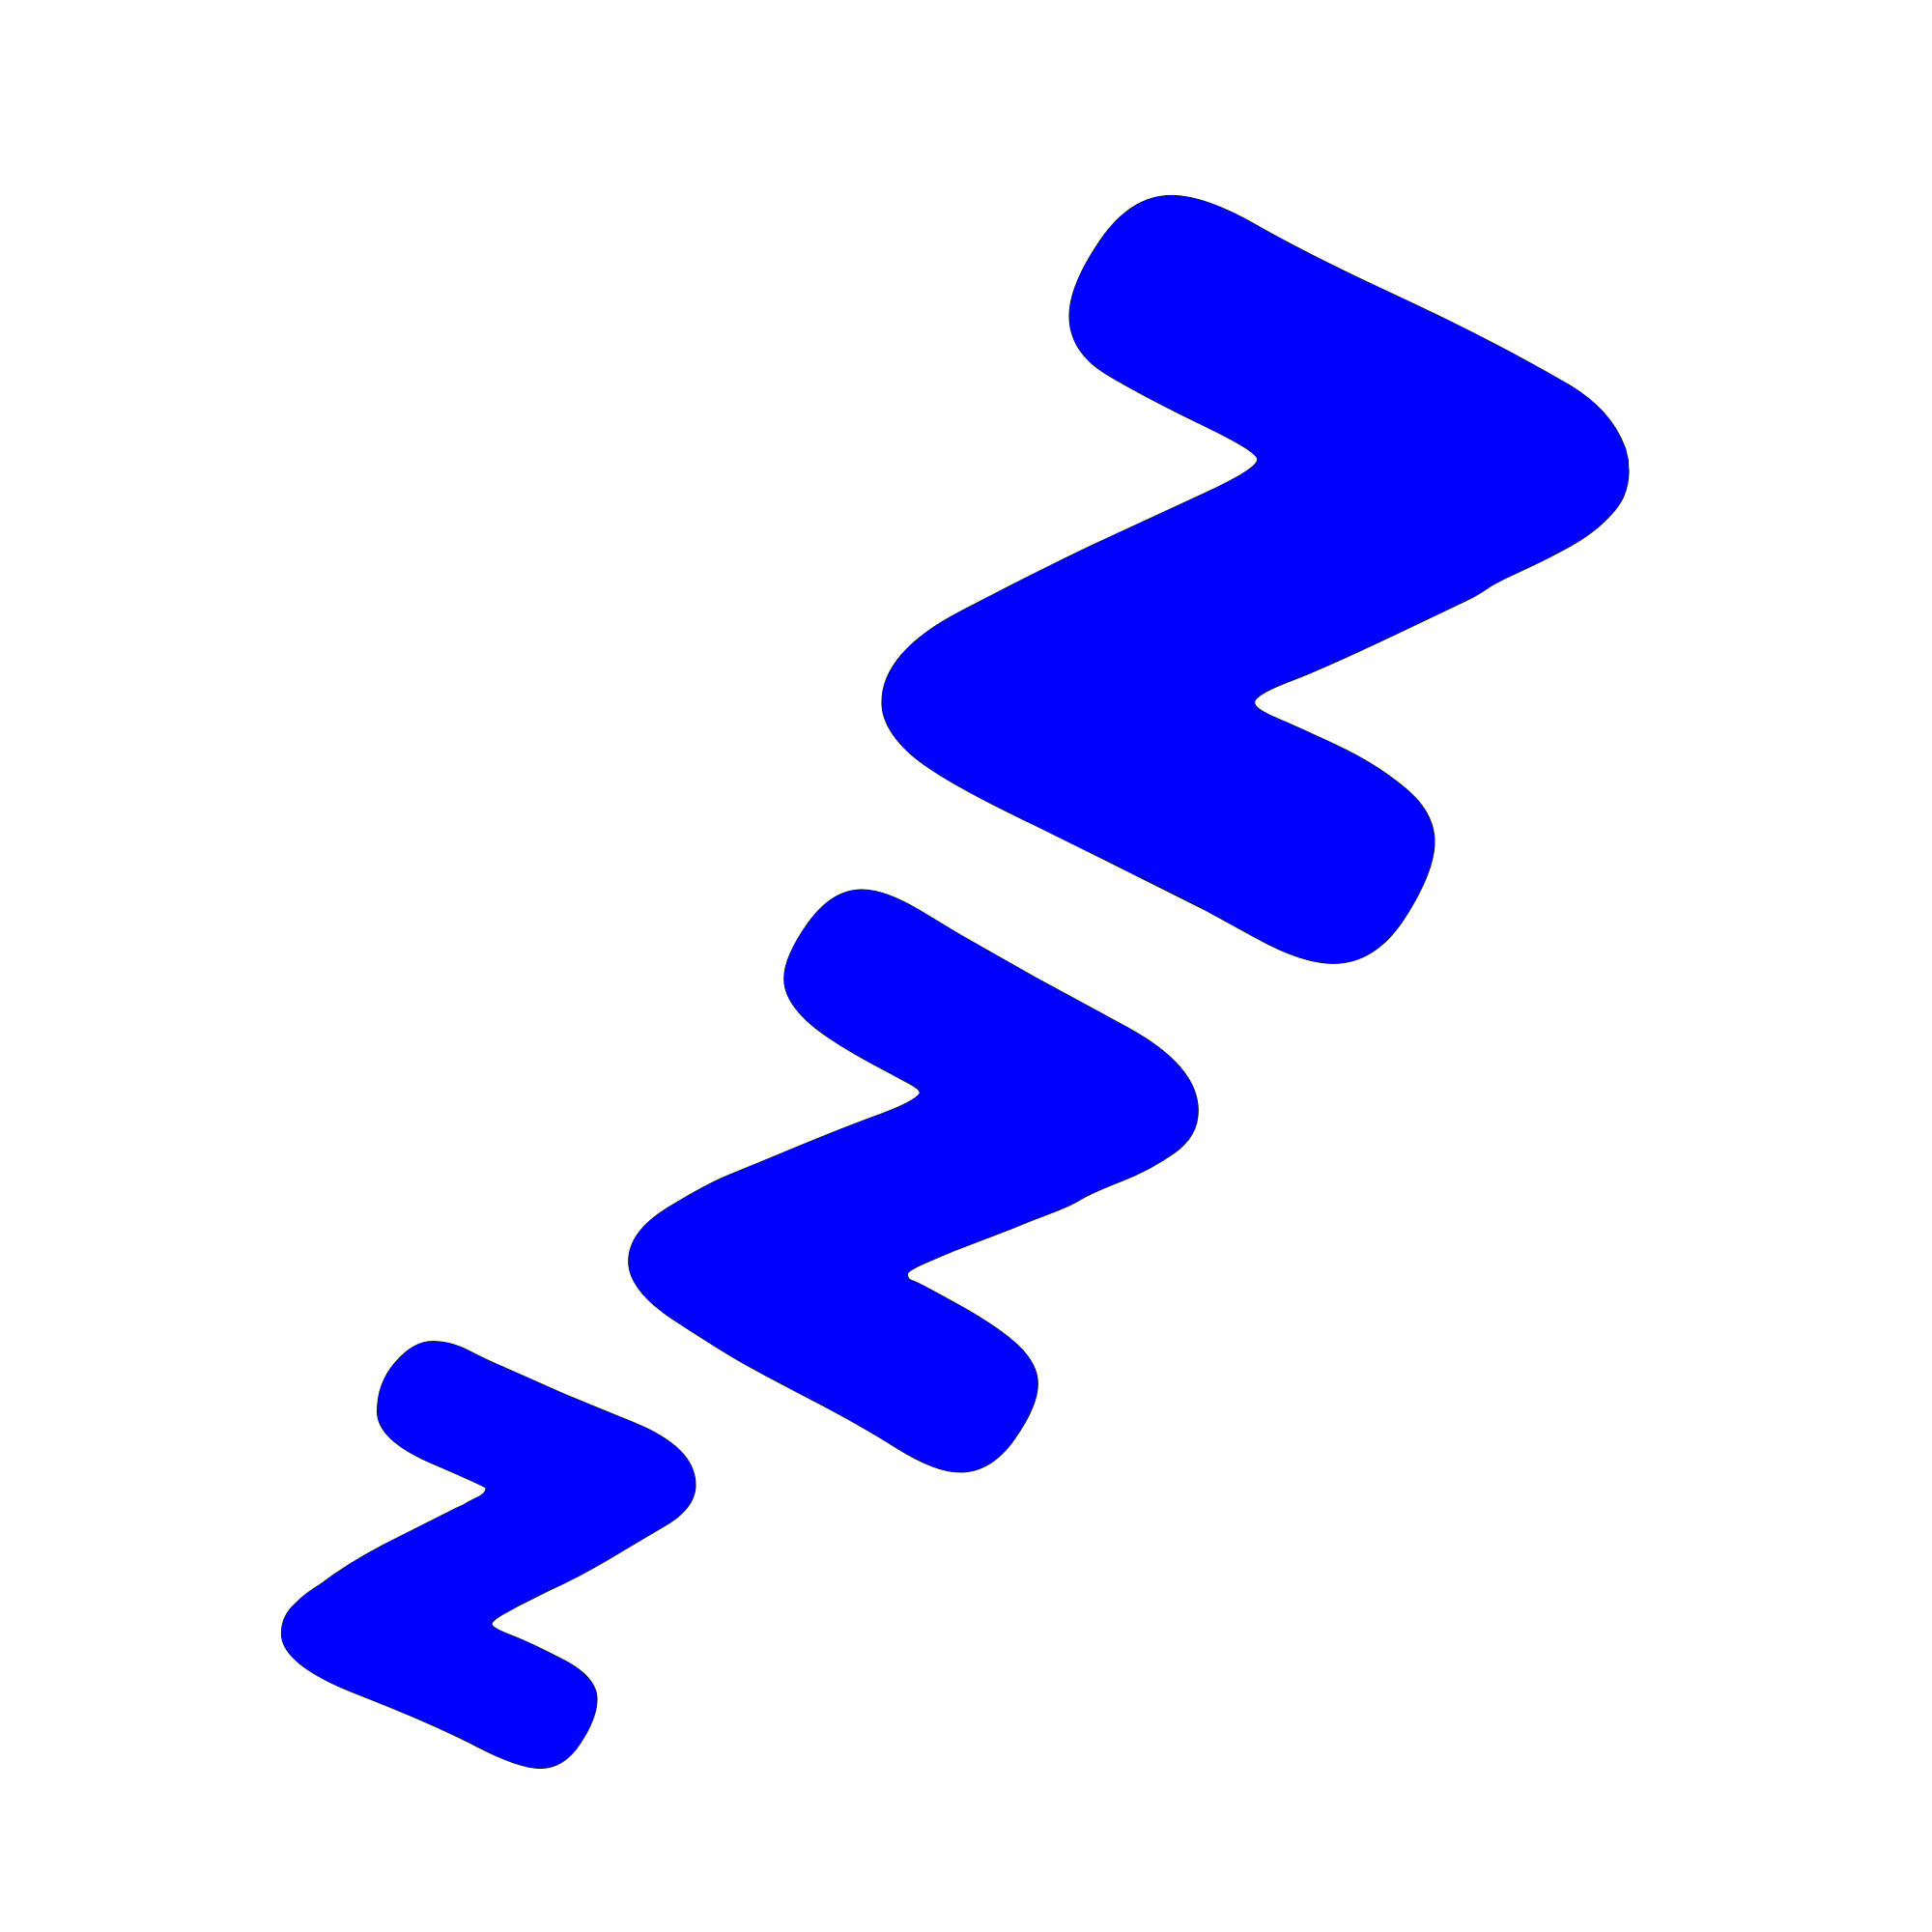 Zzz Emoji Png (101+ images in Collection) Page 1.